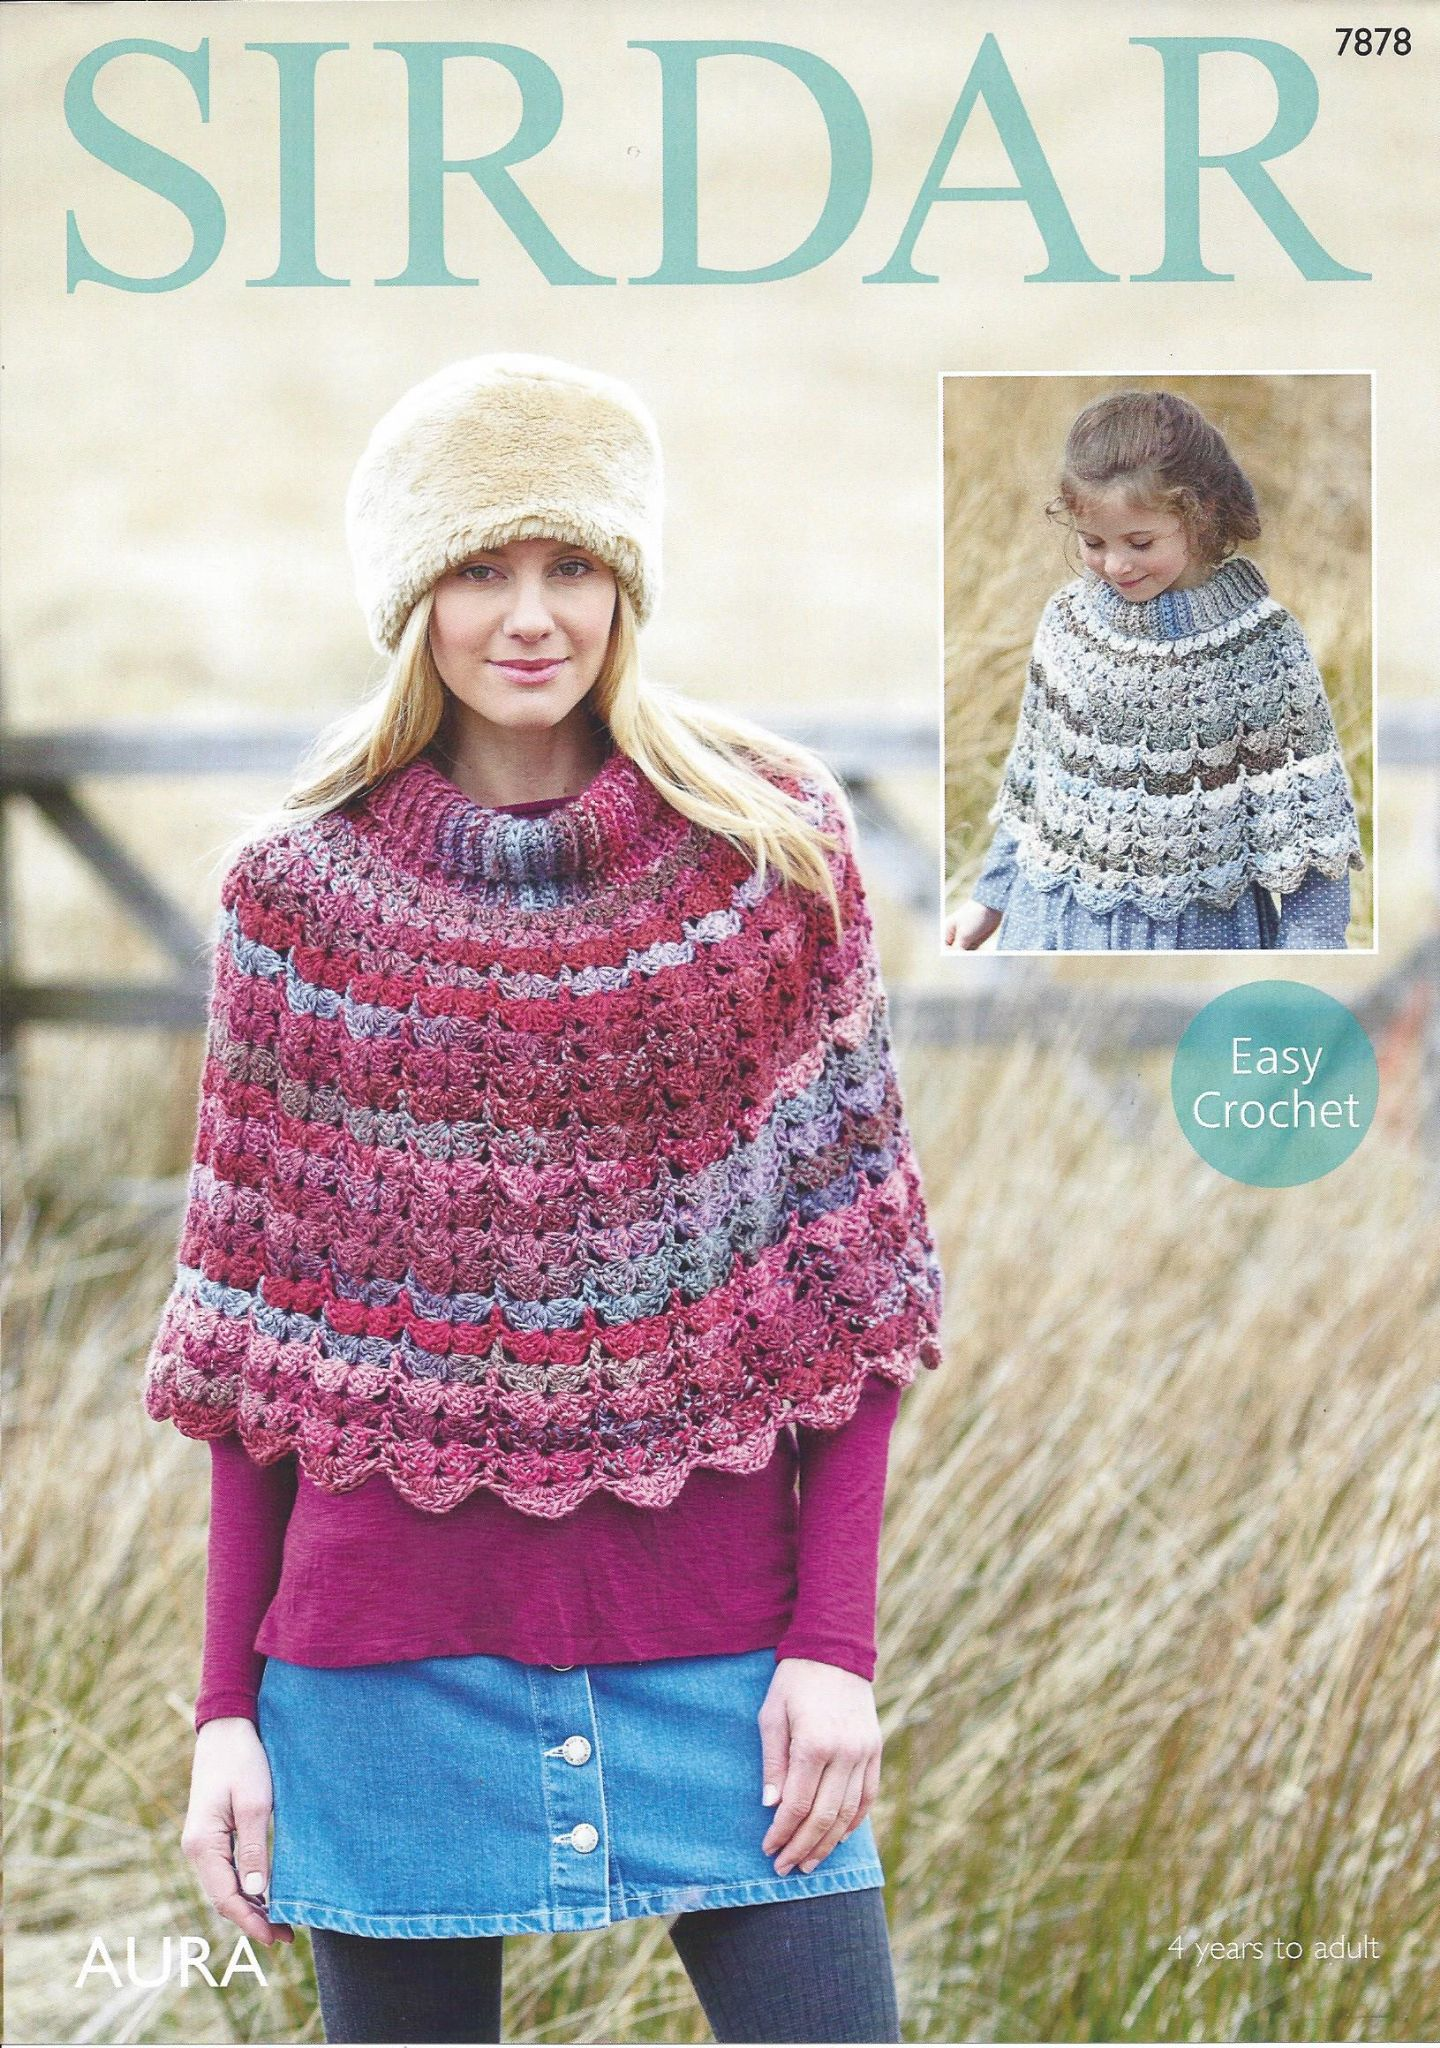 Home > Chunky Yarns and Knitting Patterns > Sirdar Aura Chunky 100g ...